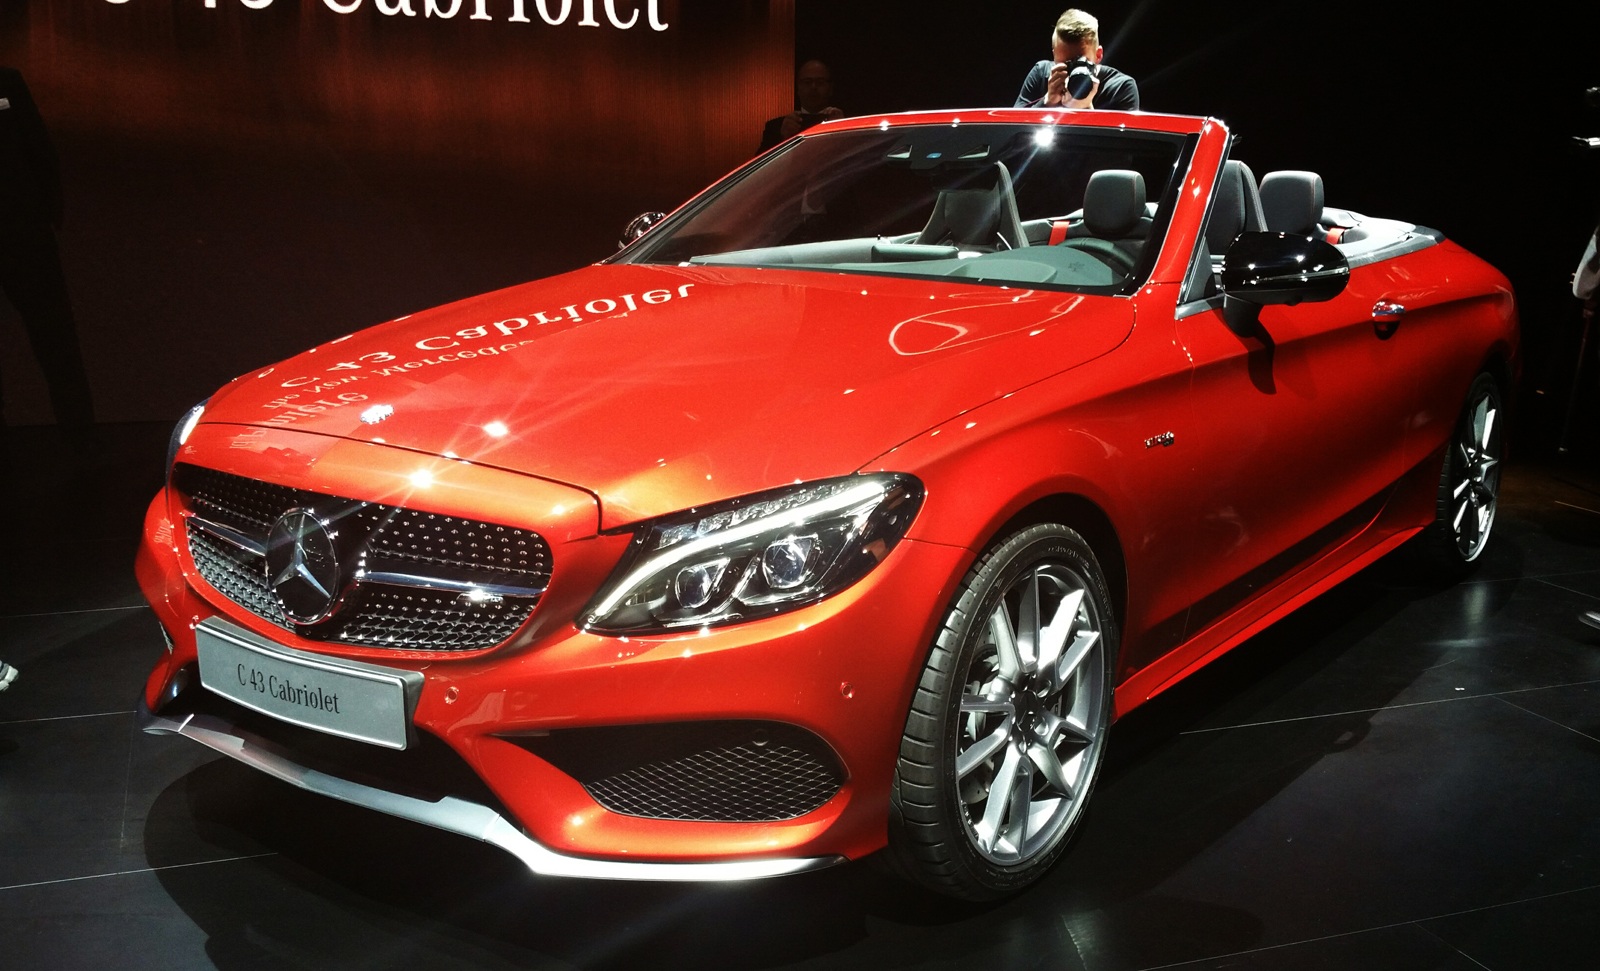 Volvo Slc >> 2017 Mercedes-Benz C-Class Cabriolet Makes Global Debut Looking Like a Mini S-Class » AutoGuide ...